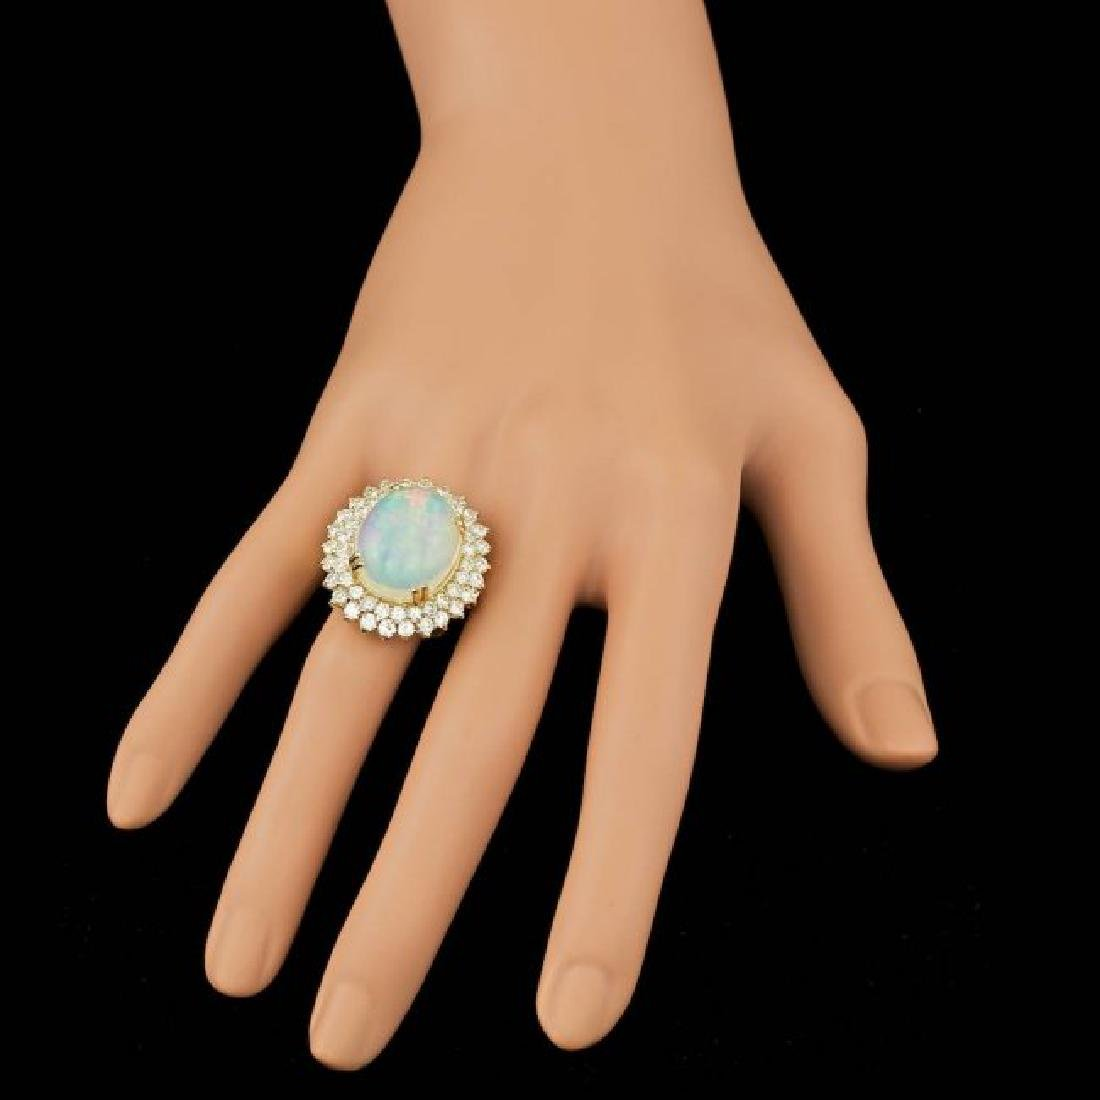 14k Yellow Gold 9.00ct Opal 3.15ct Diamond Ring - 4